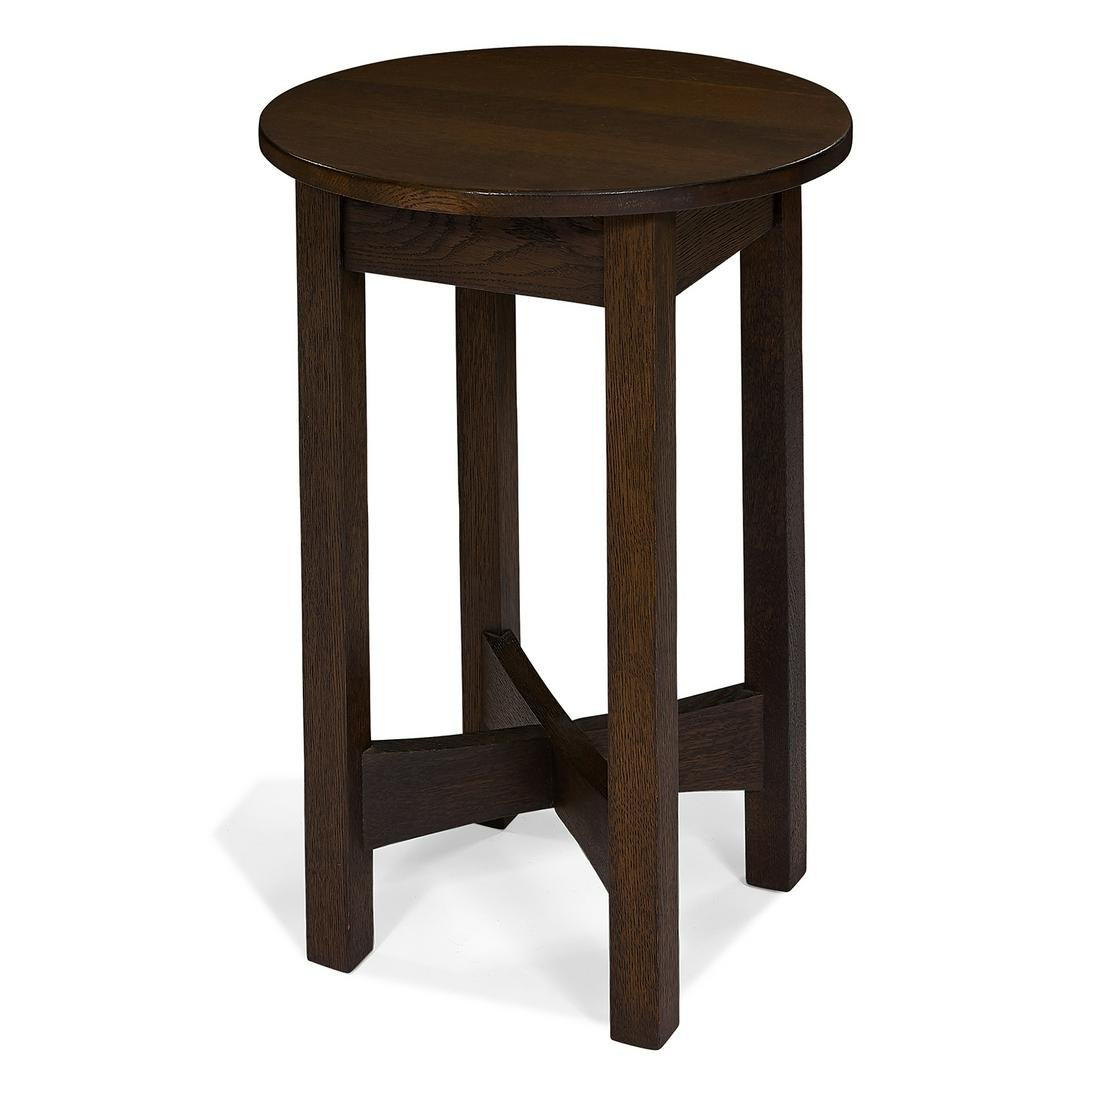 American Arts & Crafts drink stand with round top